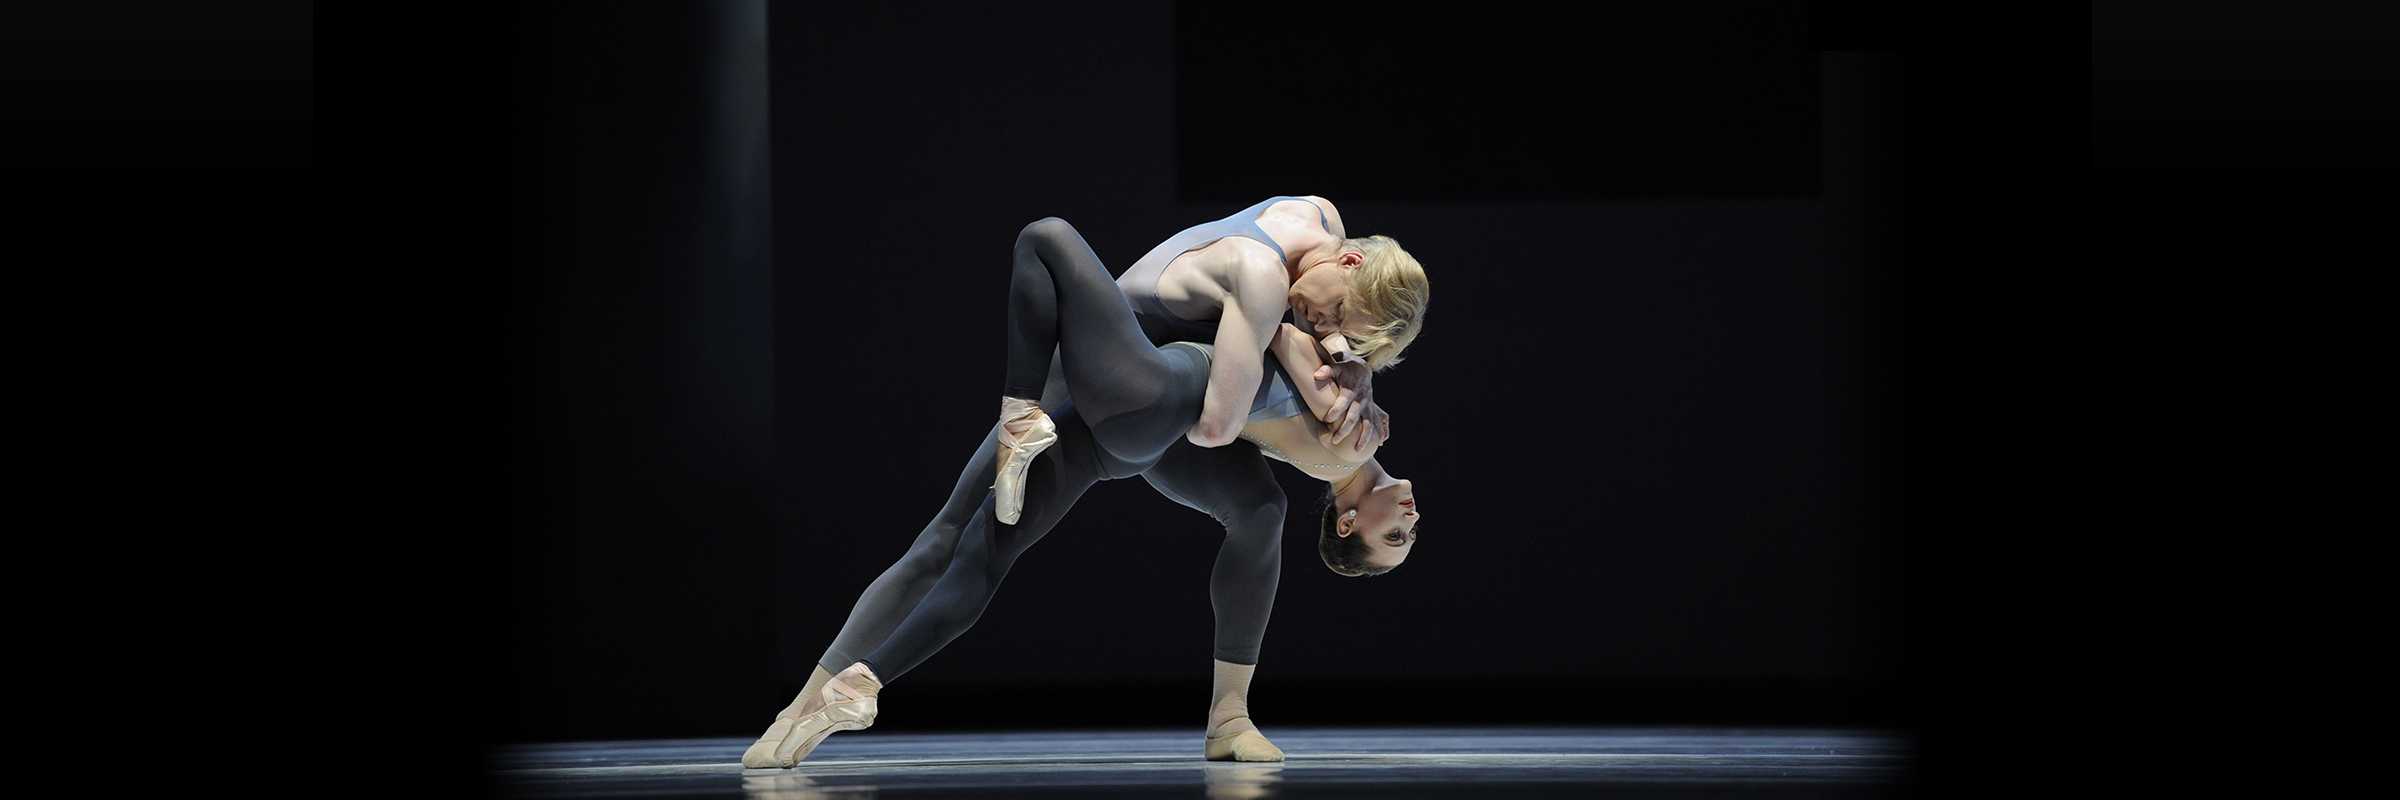 Sarah Van Patten and Tiit Helimets in Tomasson's The Fifth Season. (© Erik Tomasson)